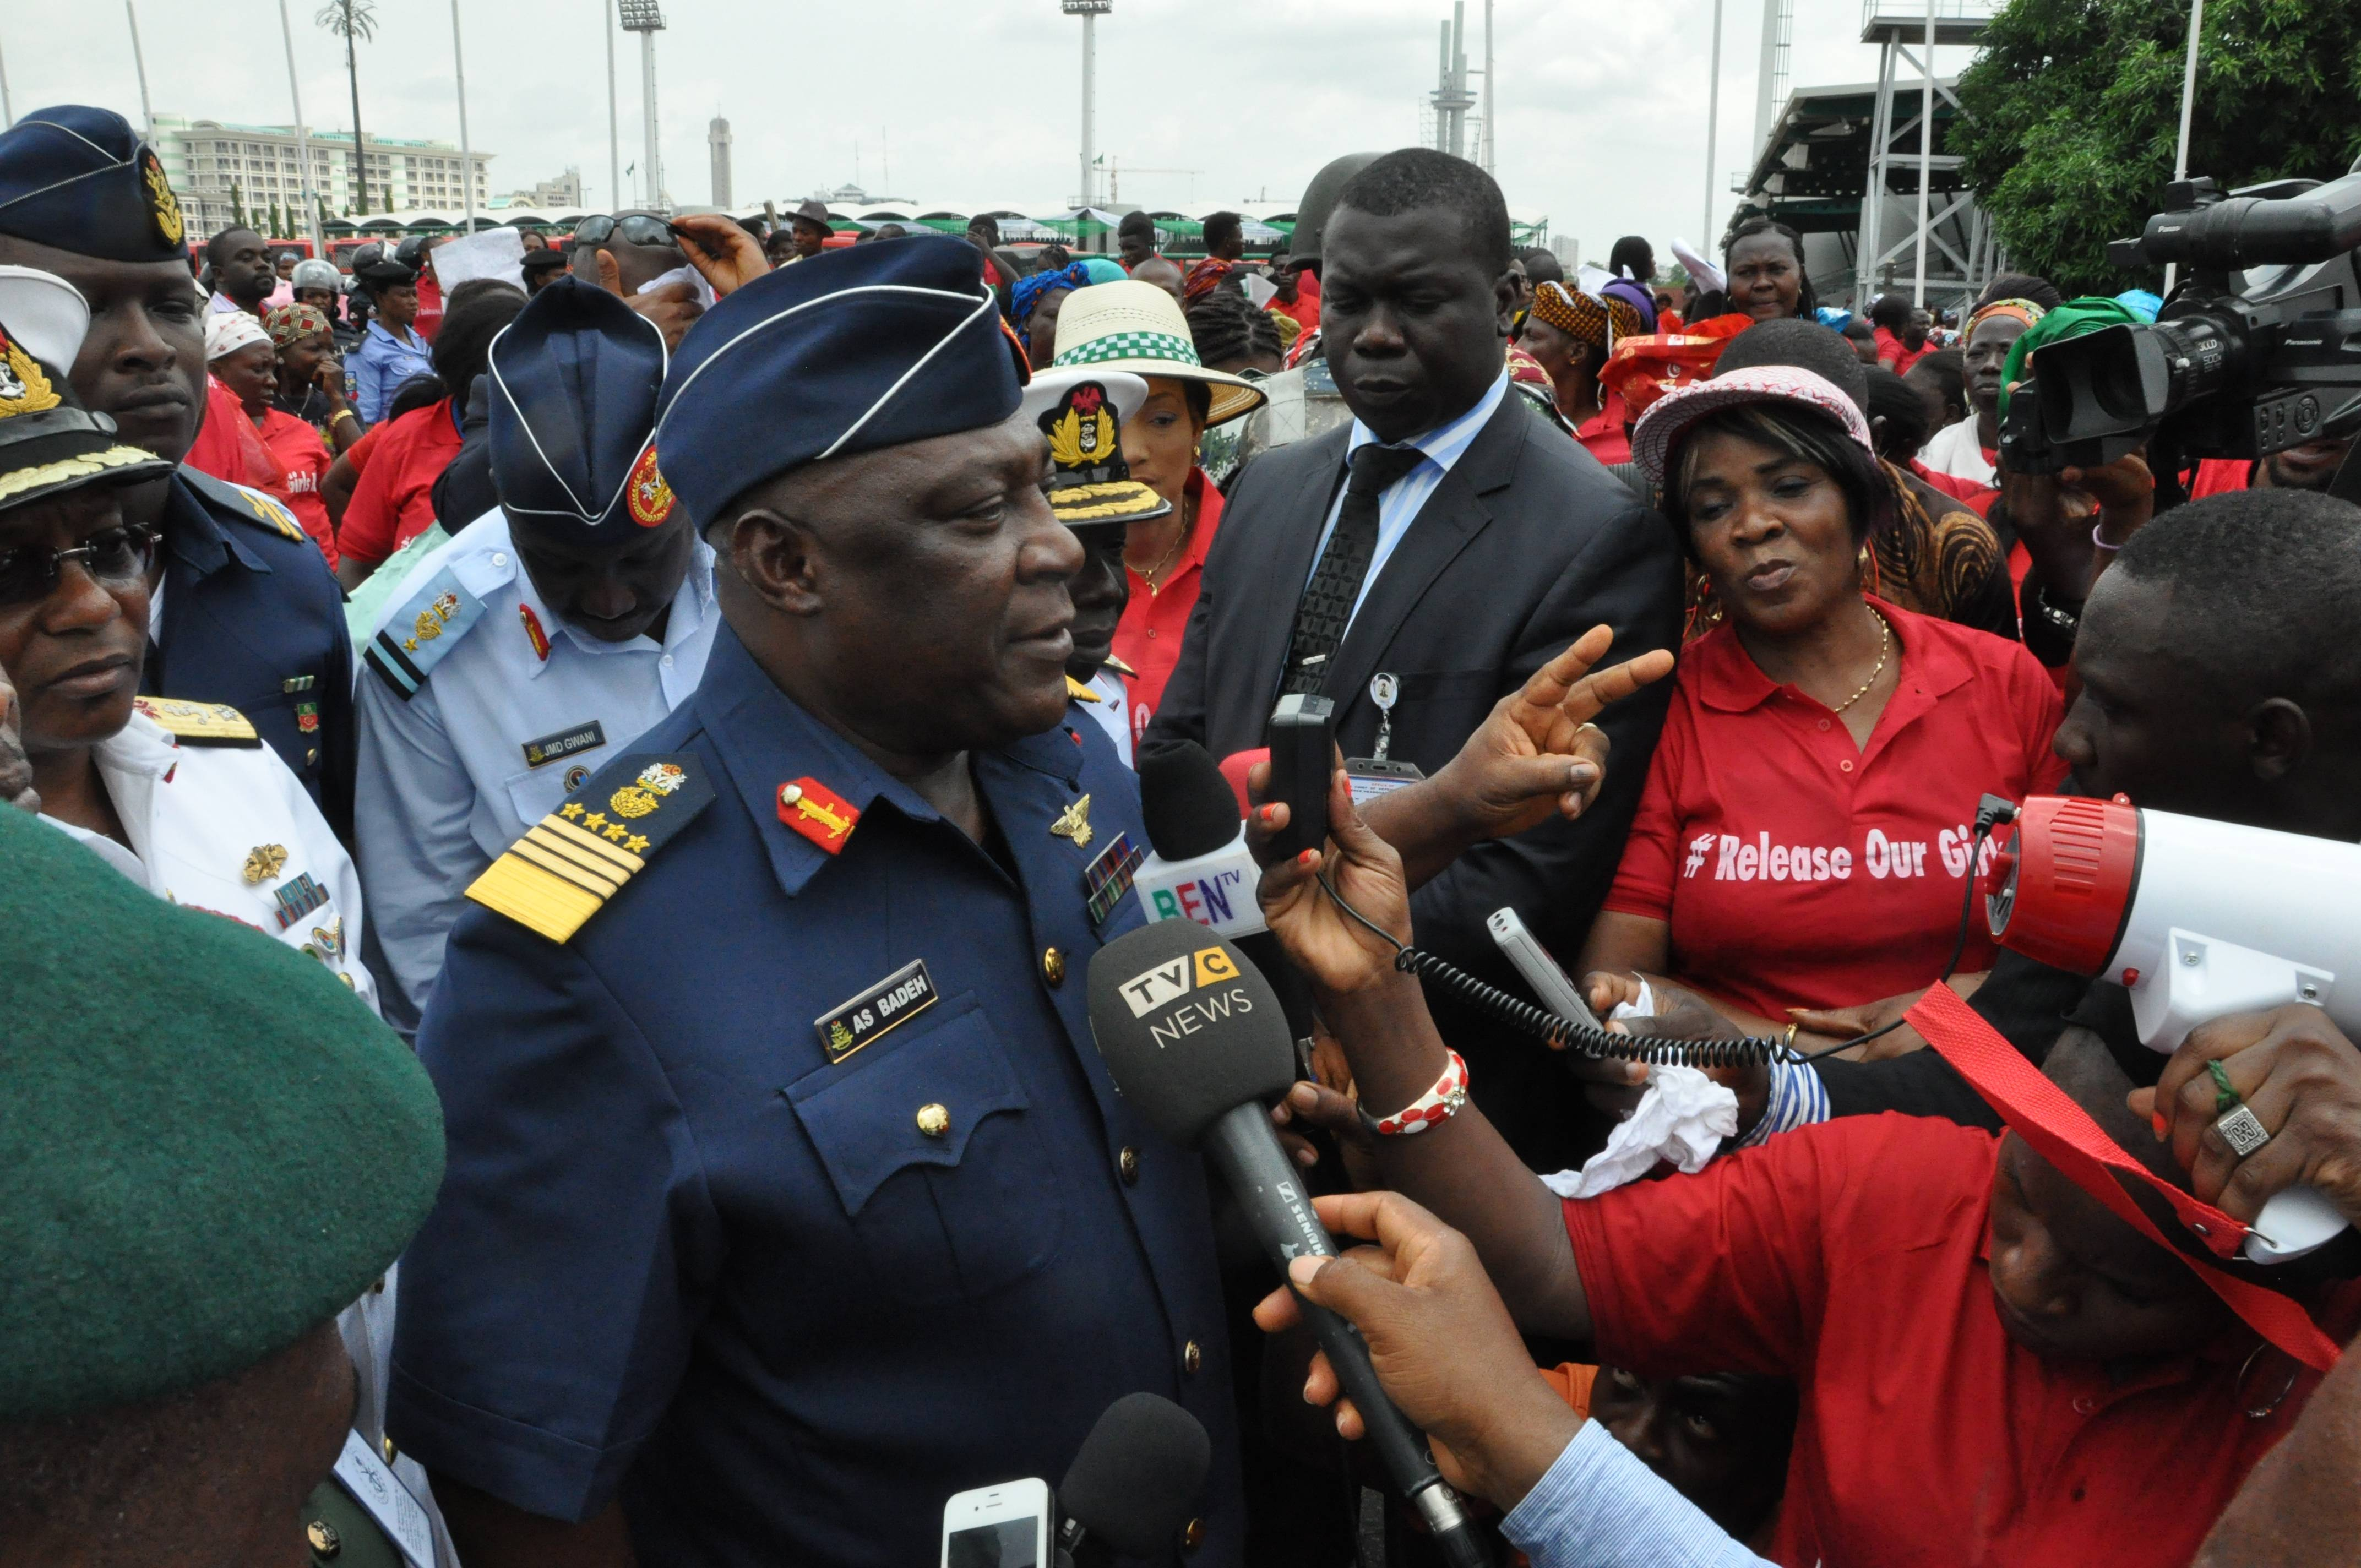 "Nigeria's chief of defense staff Air Marshal Alex S. Badeh, centre, speaks Monday during a demonstration calling on the government to rescue the kidnapped girls of the government secondary school in Chibok, in Abuja, Nigeria. Scores of protesters chanting ""Bring Back Our Girls"" marched in the Nigerian capital Monday to protest the abductions of more than 300 schoolgirls by Boko Haram, the government's failure to rescue them and the killings of scores of teachers by Islamic extremists in recent years."